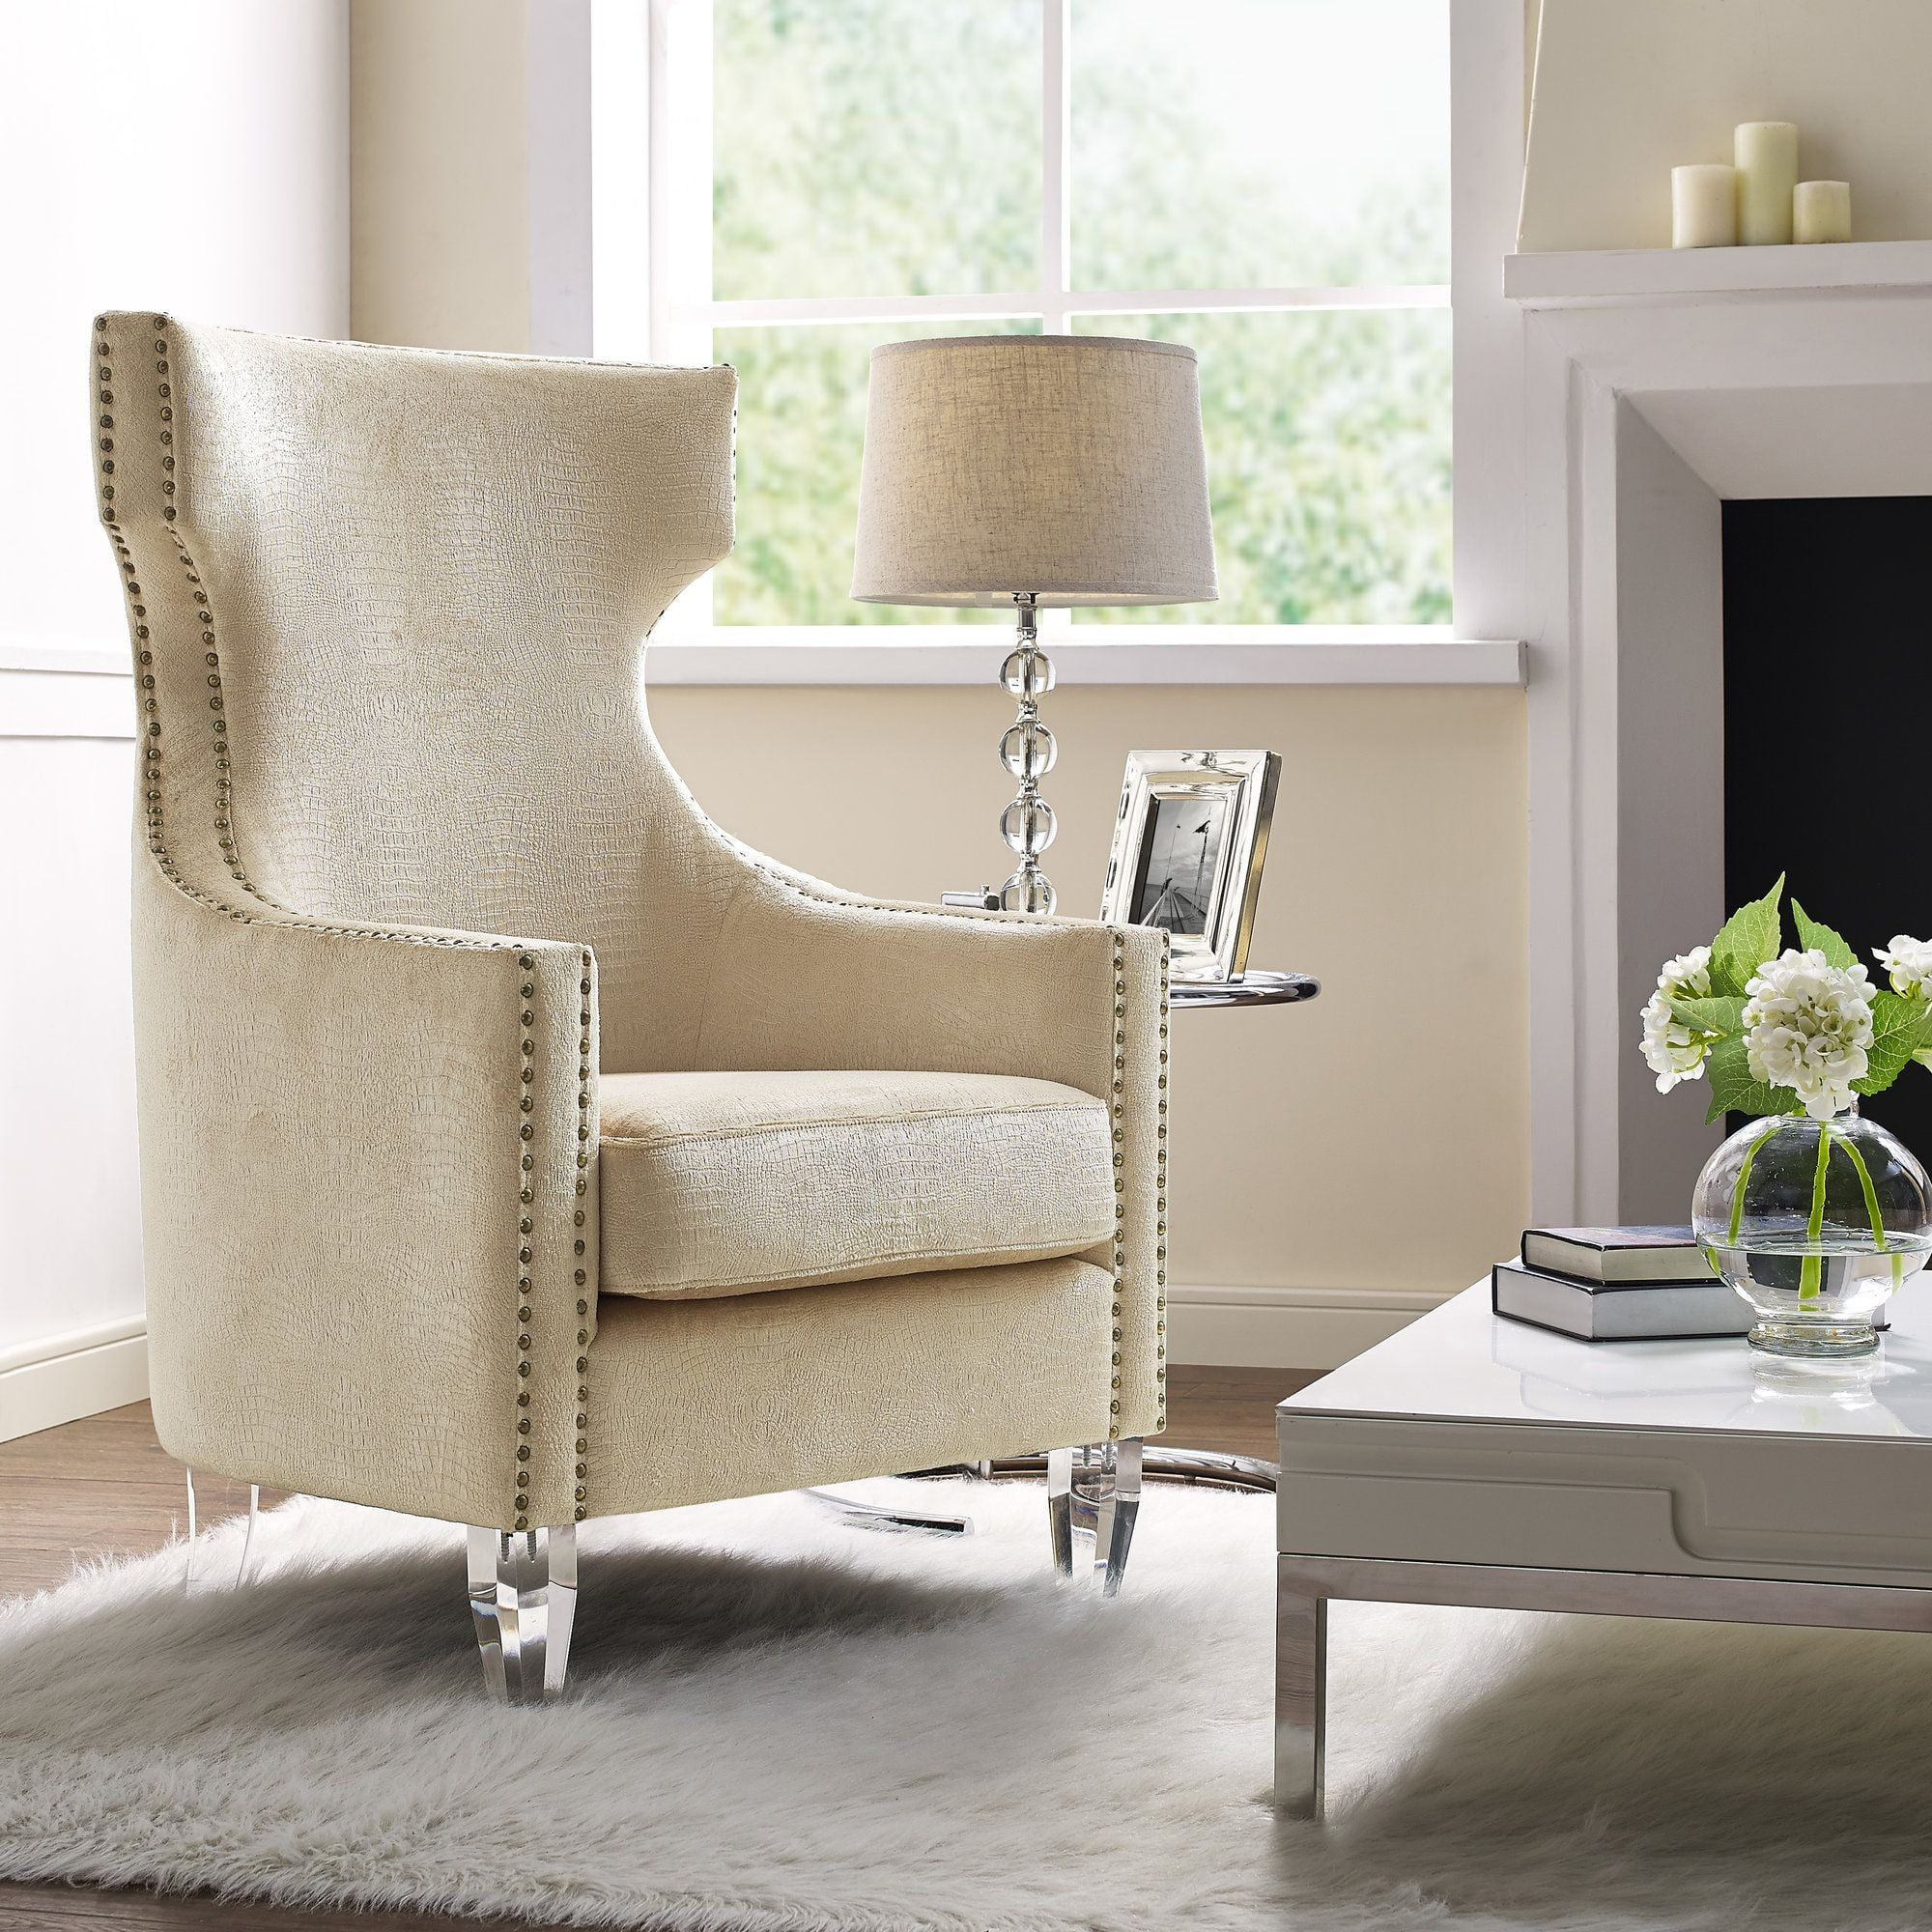 Gramercy Gold Croc Velvet Wing Chair from TOV (TOV-A76) | Coleman ...